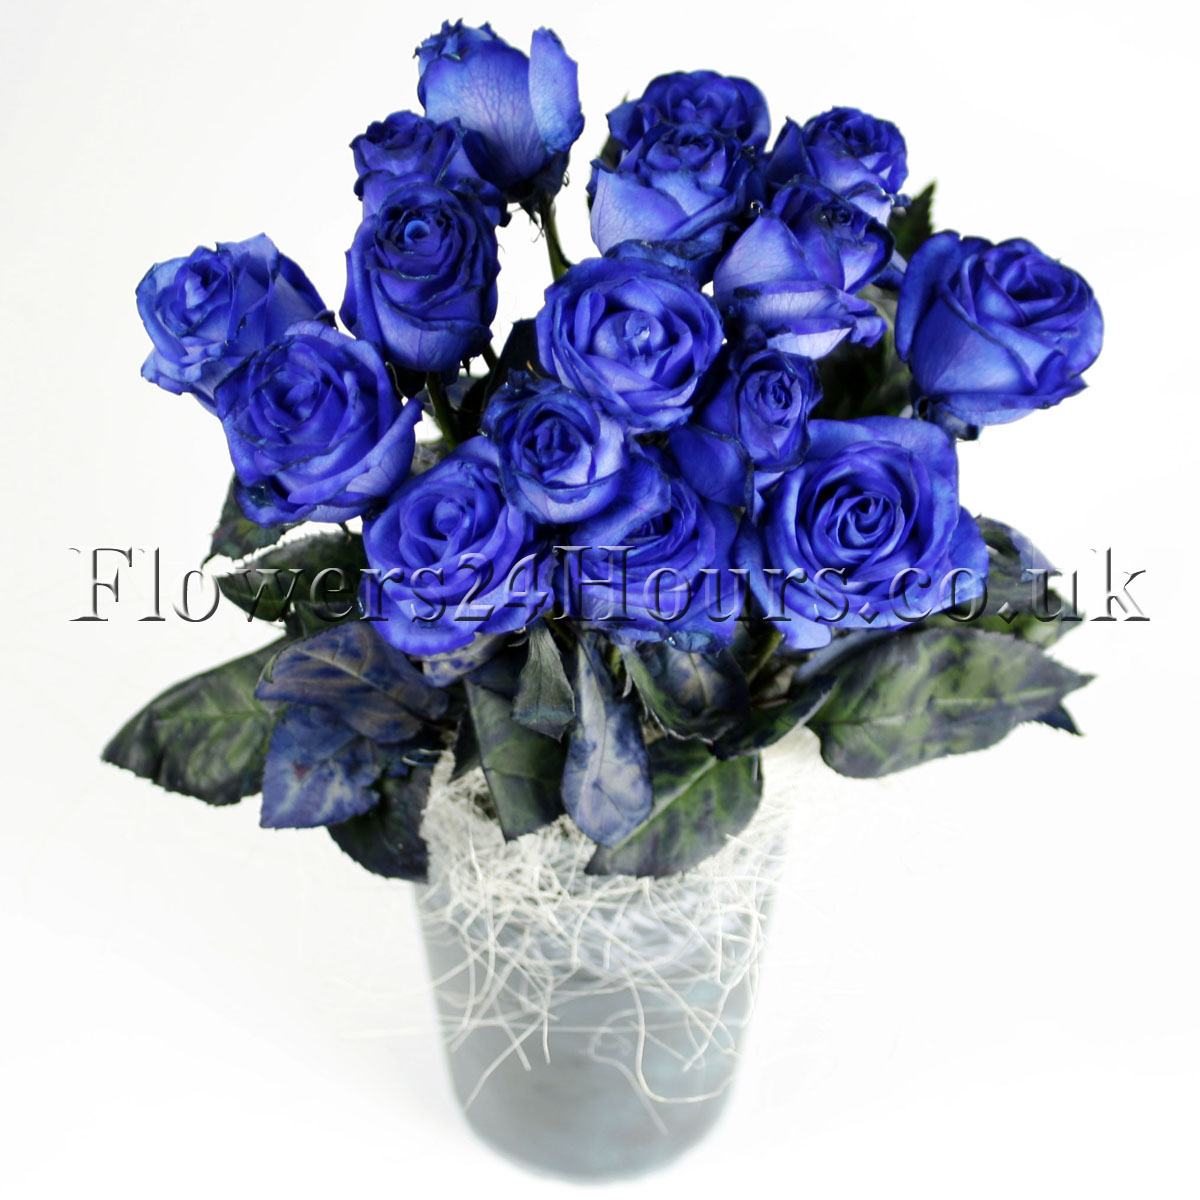 Midnight blue flowers image collections flower wallpaper hd halloween flowers delivered in london uk flowers blog flowers midnight blue roses izmirmasajfo izmirmasajfo